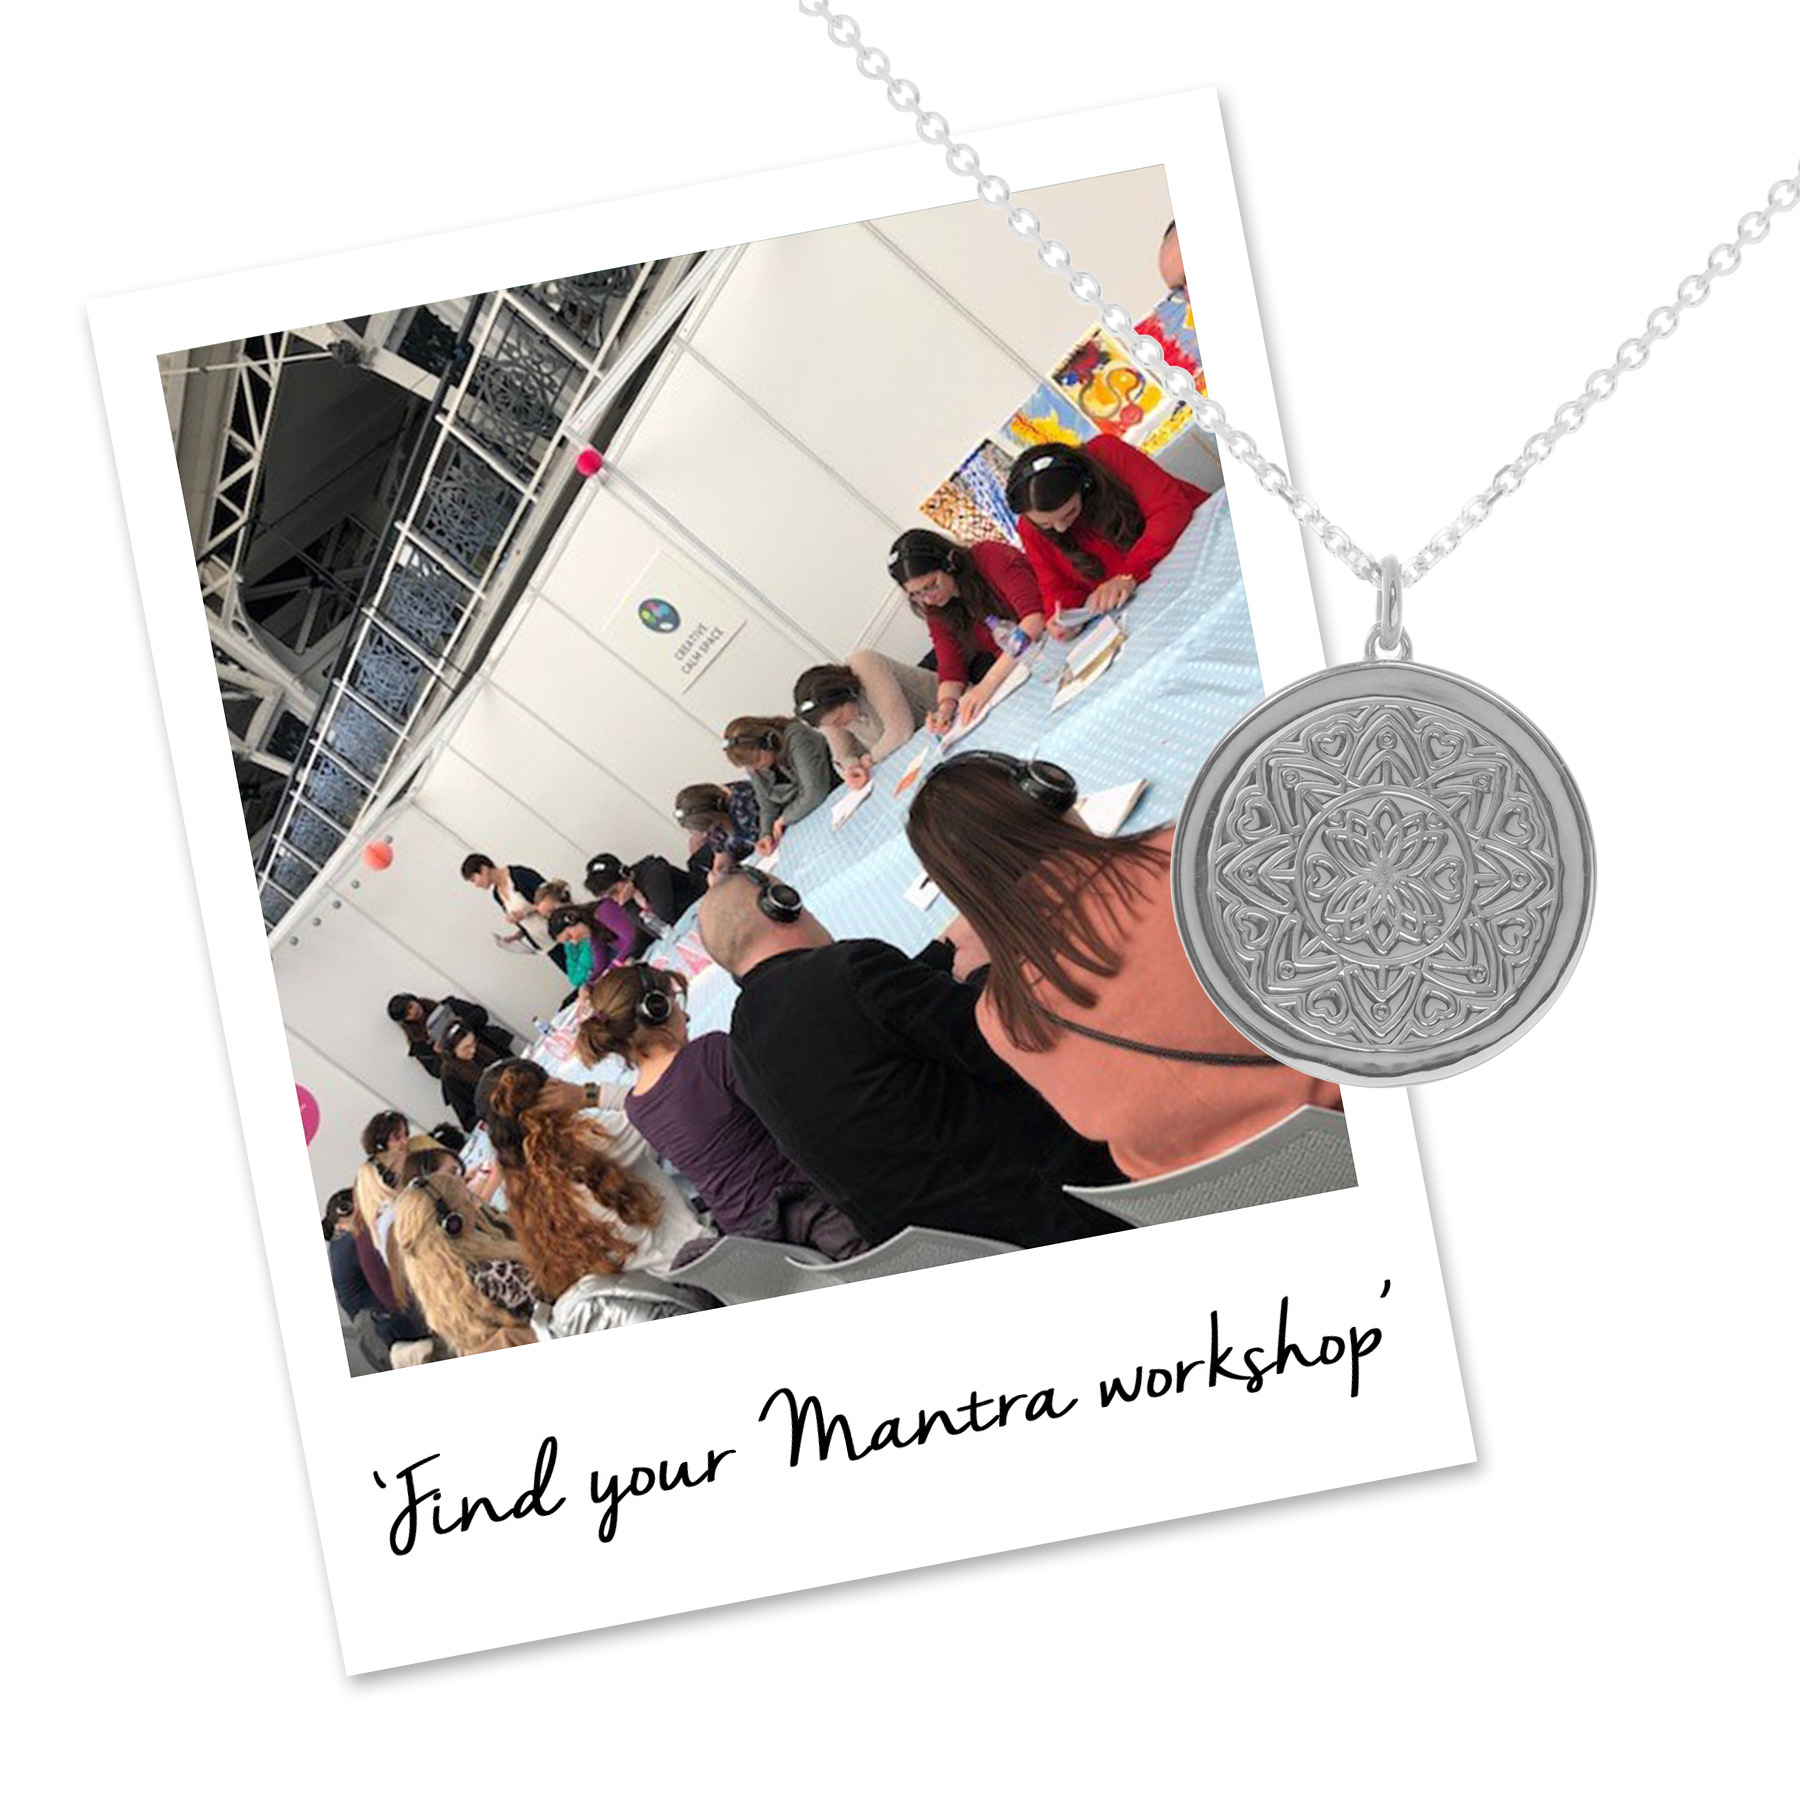 Find your Mantra Workshop by Mantra Jewellery